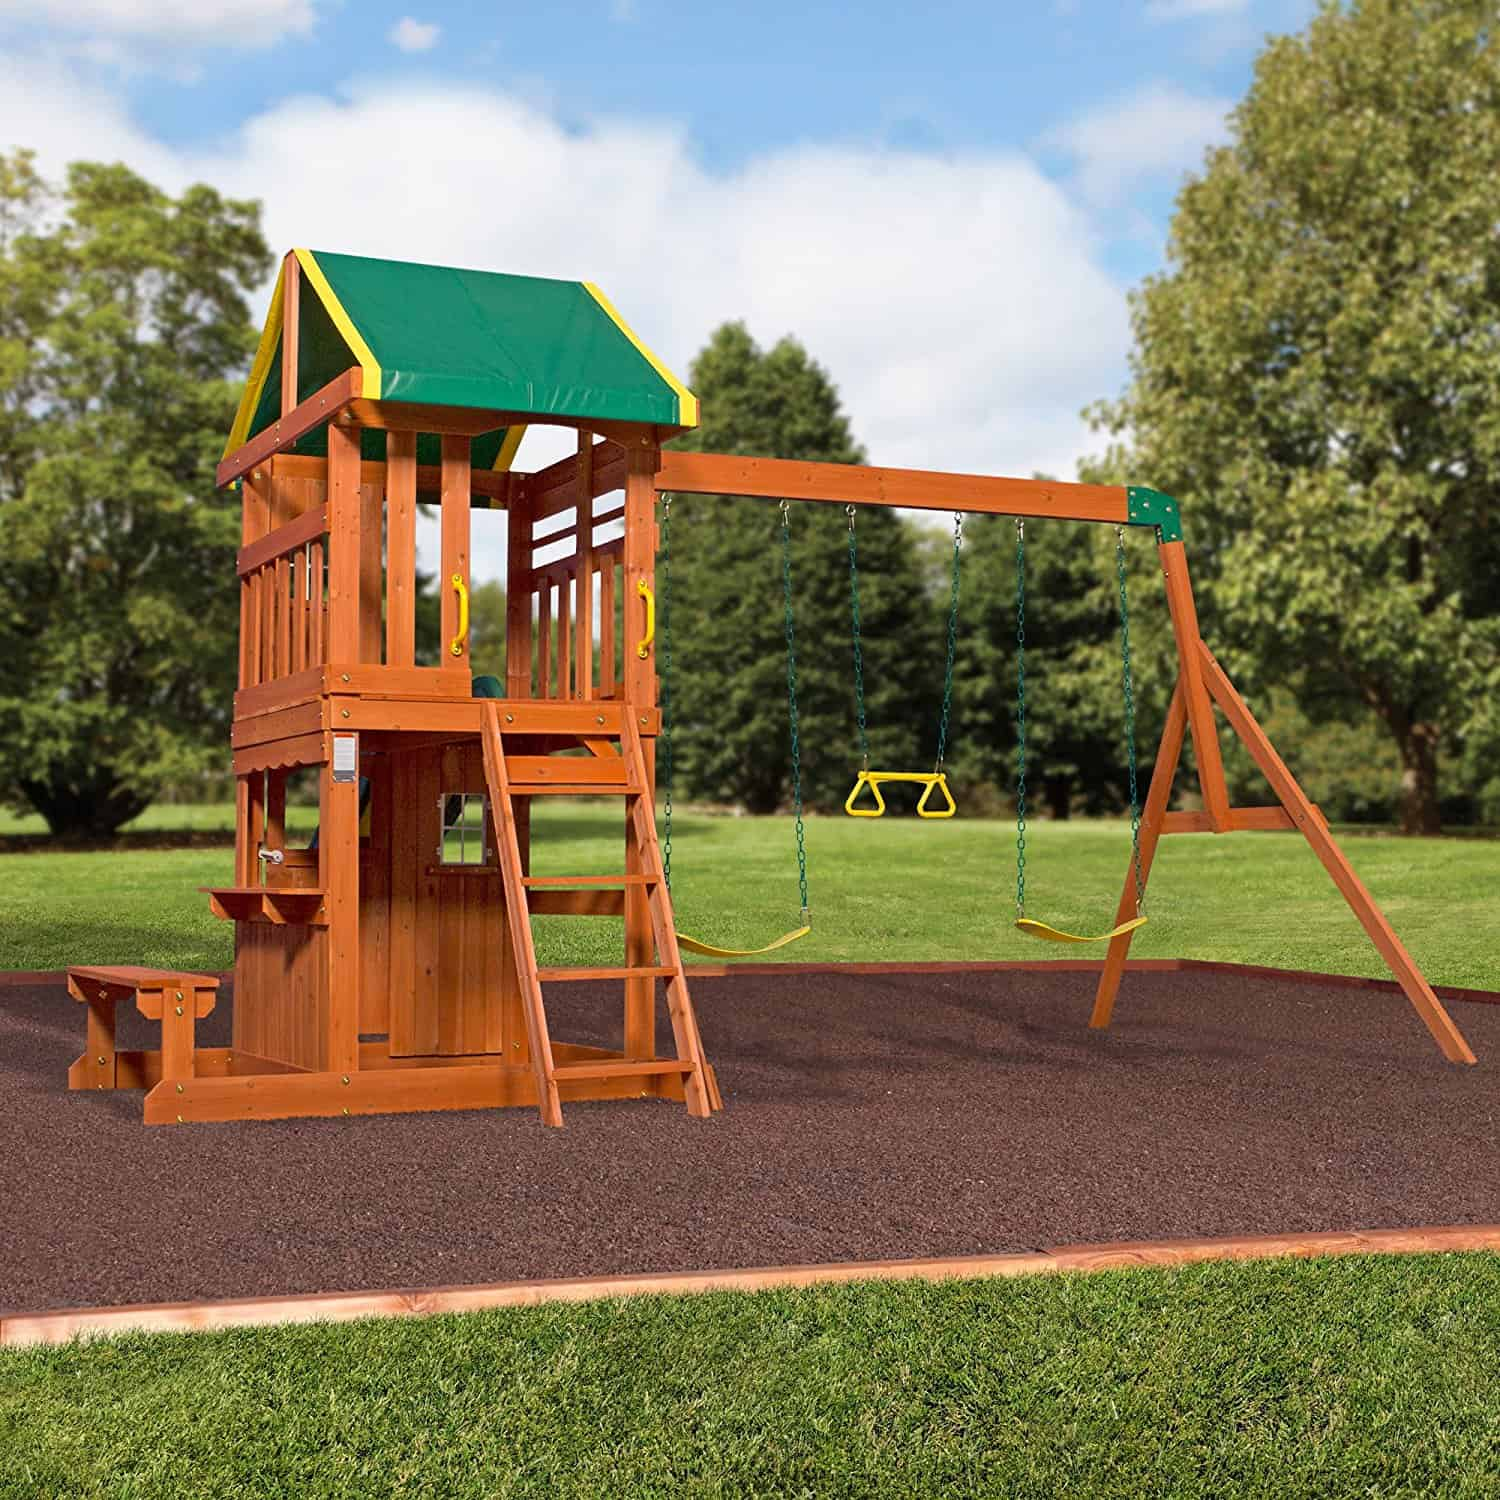 Smaller backyard playground with elevated fort and swing set.